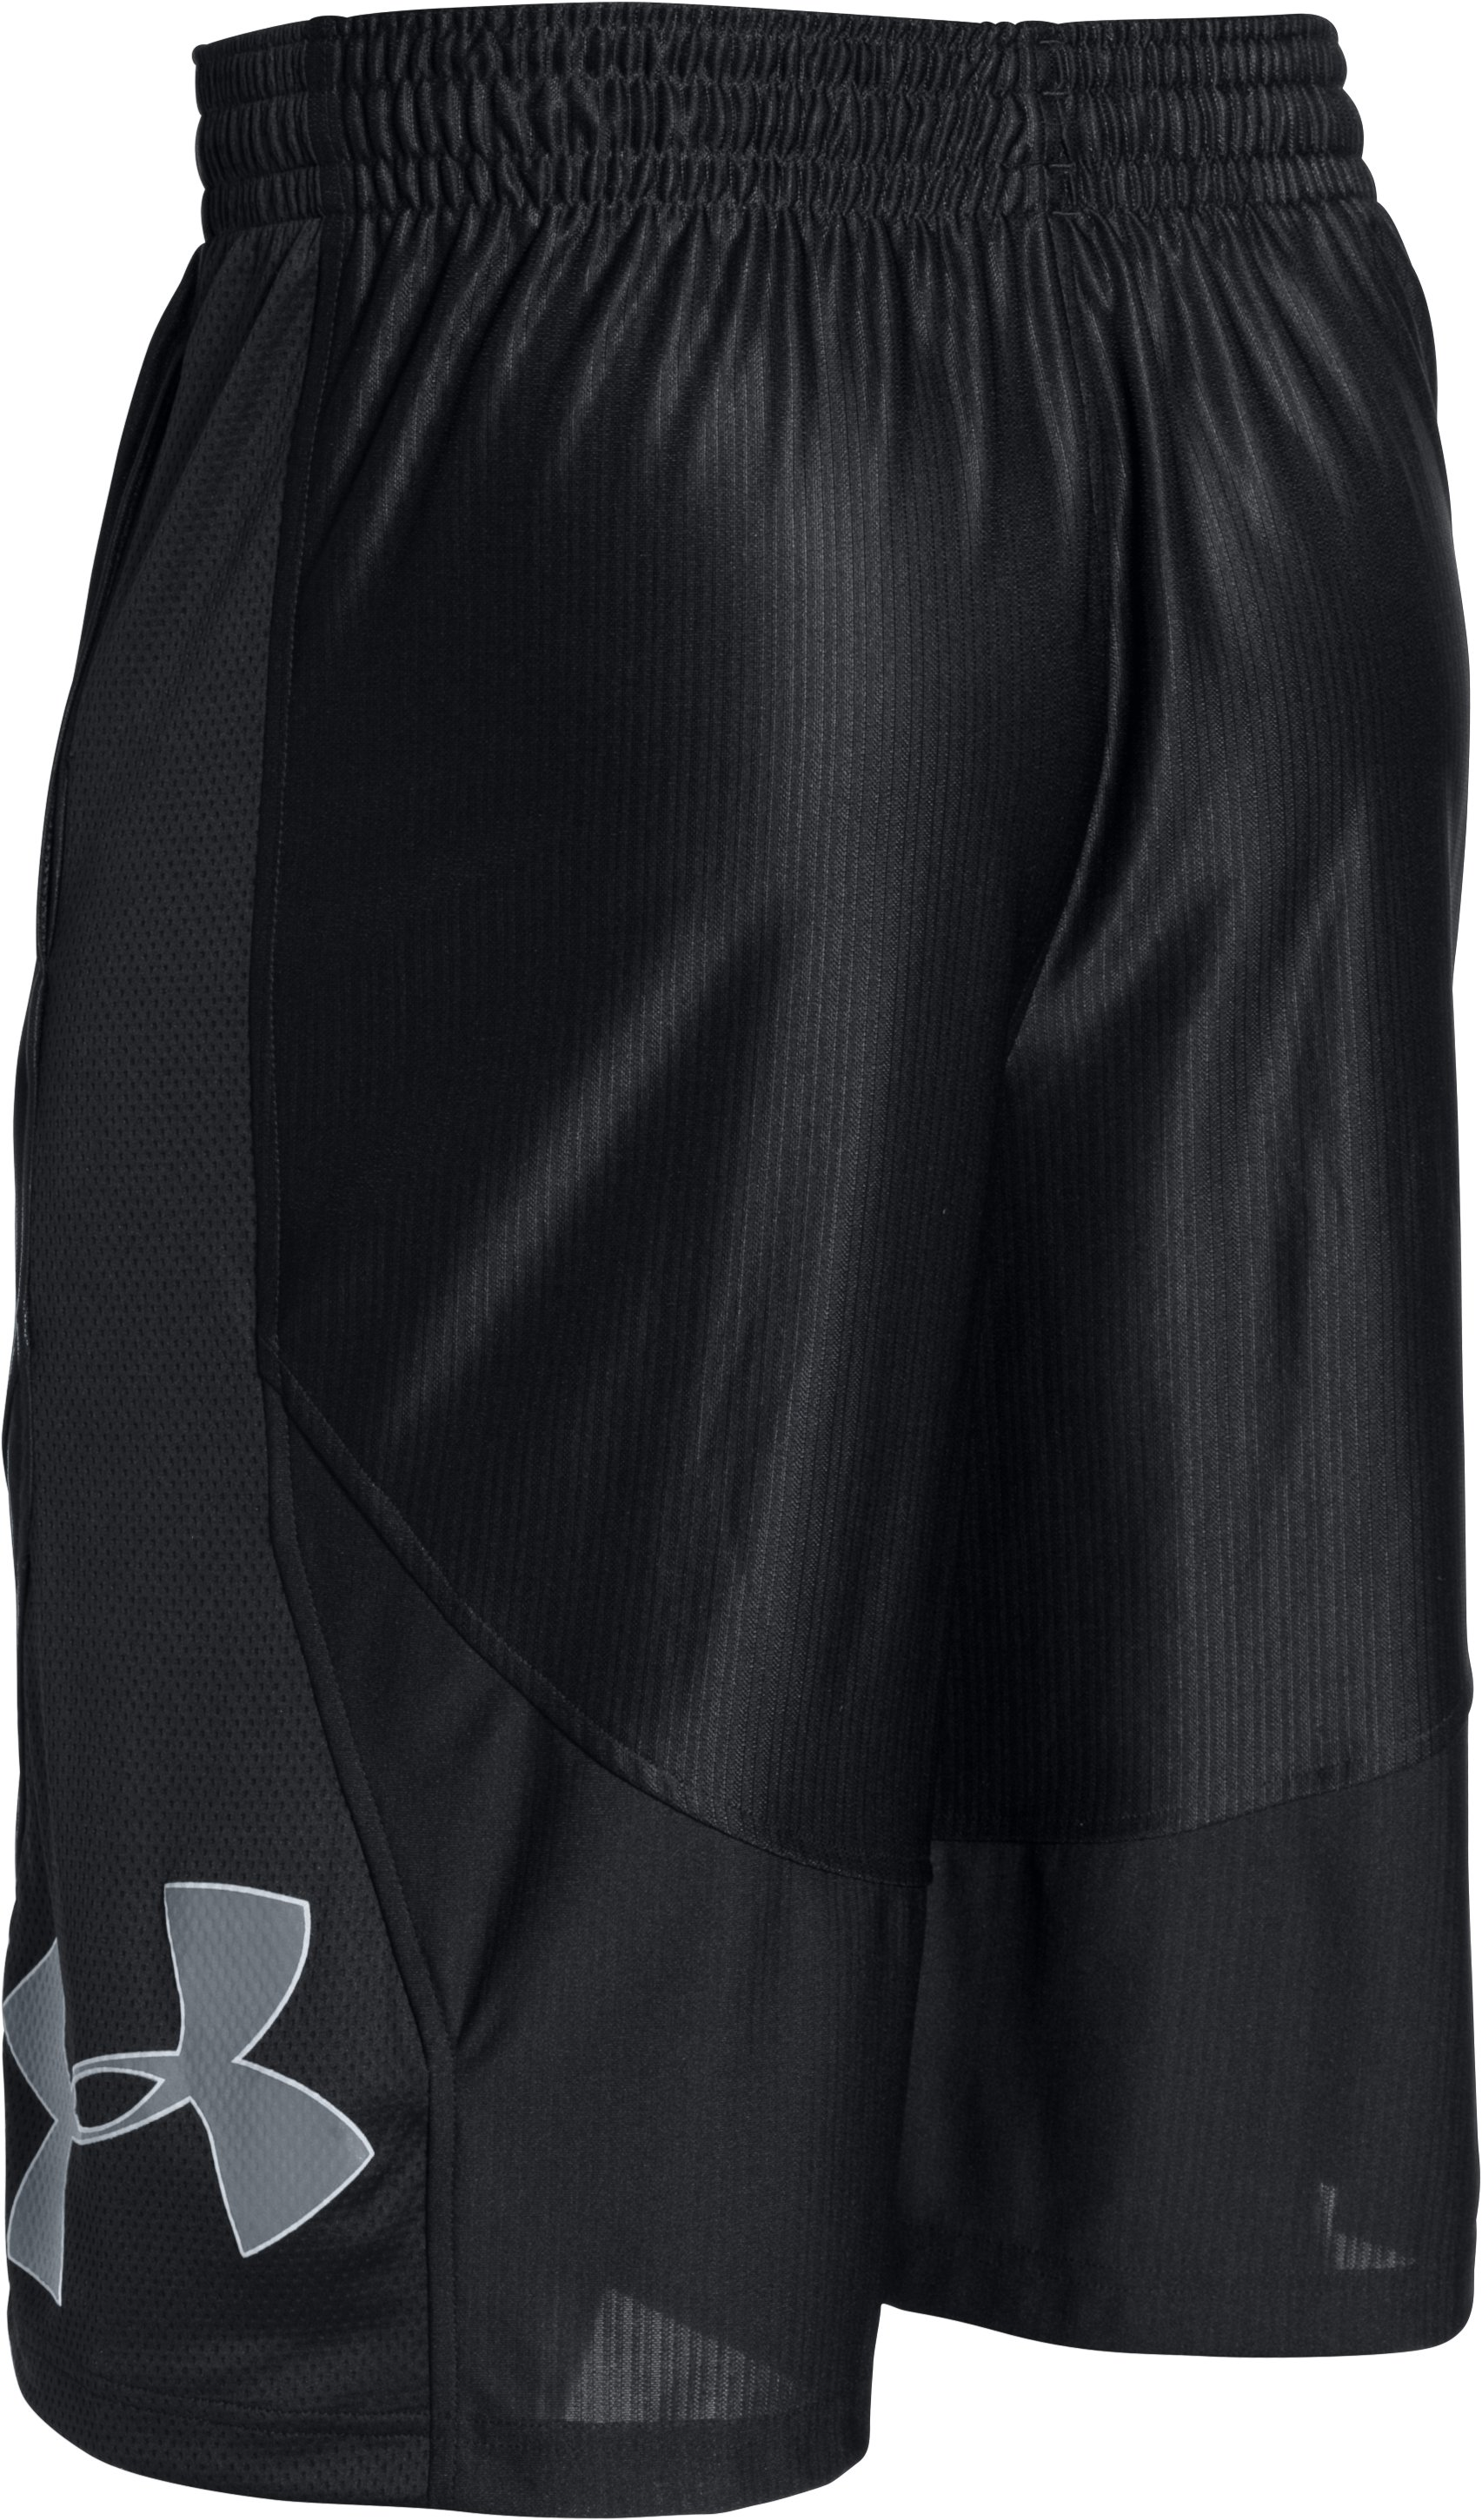 Men's UA Mo' Money Basketball Shorts, Black